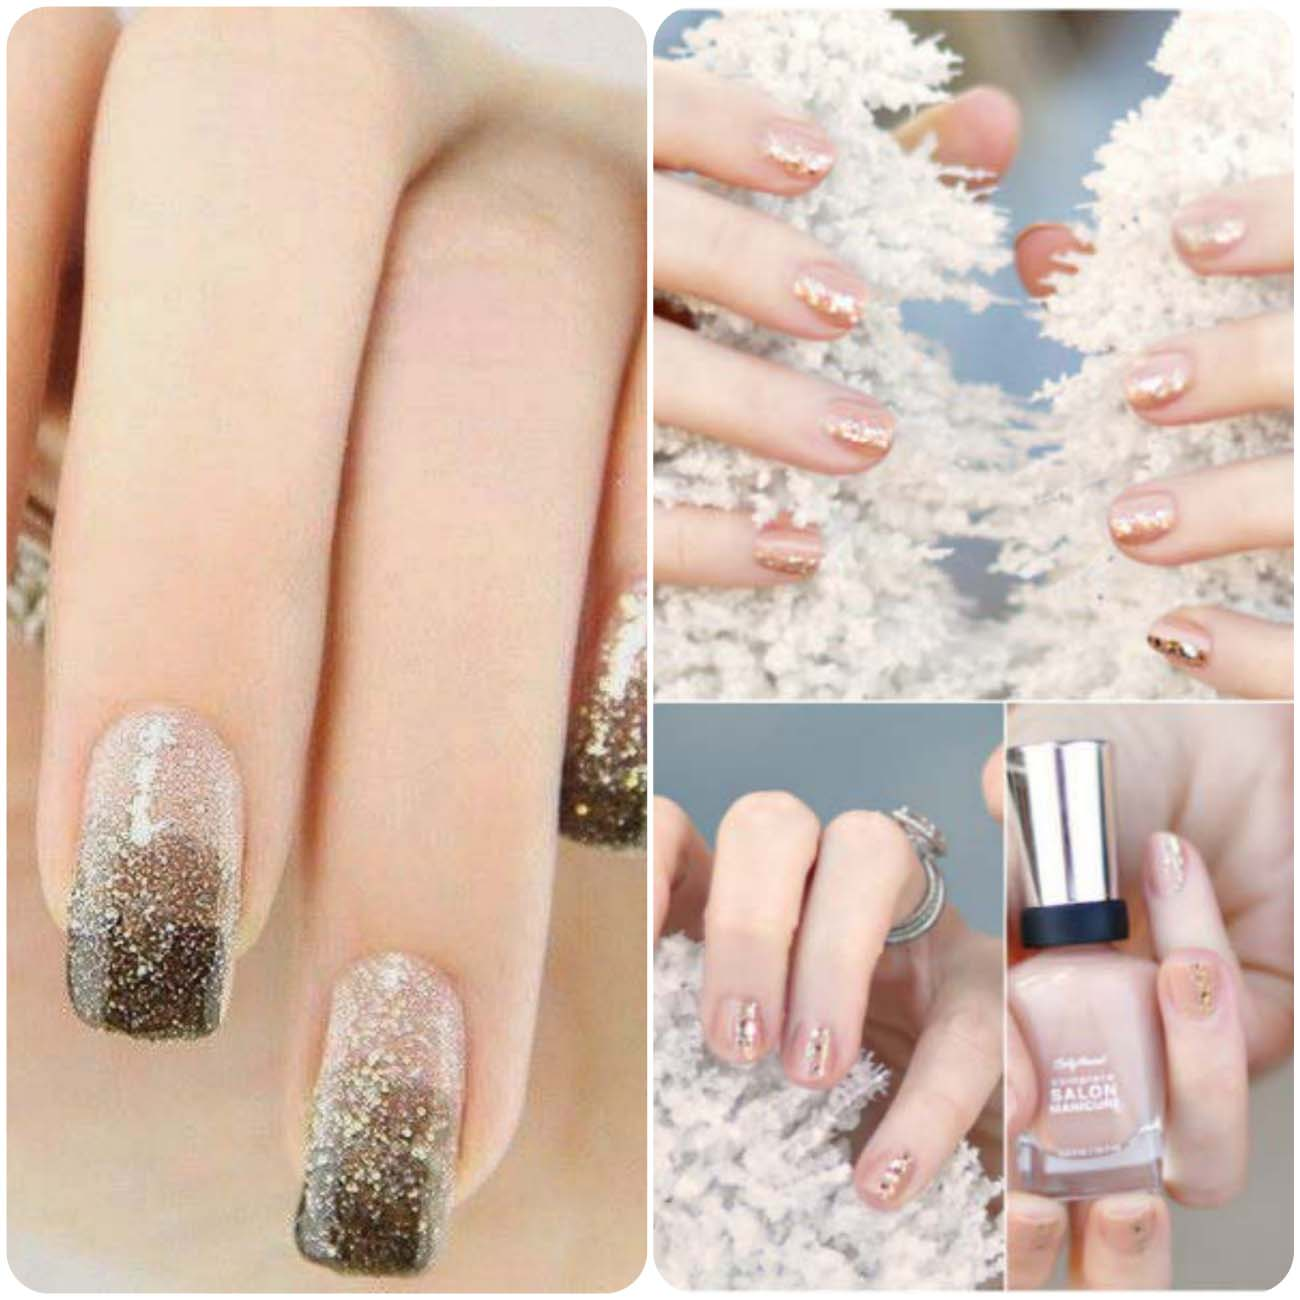 Charistmas Winter Nail art designs (22)_Fotor_Collage